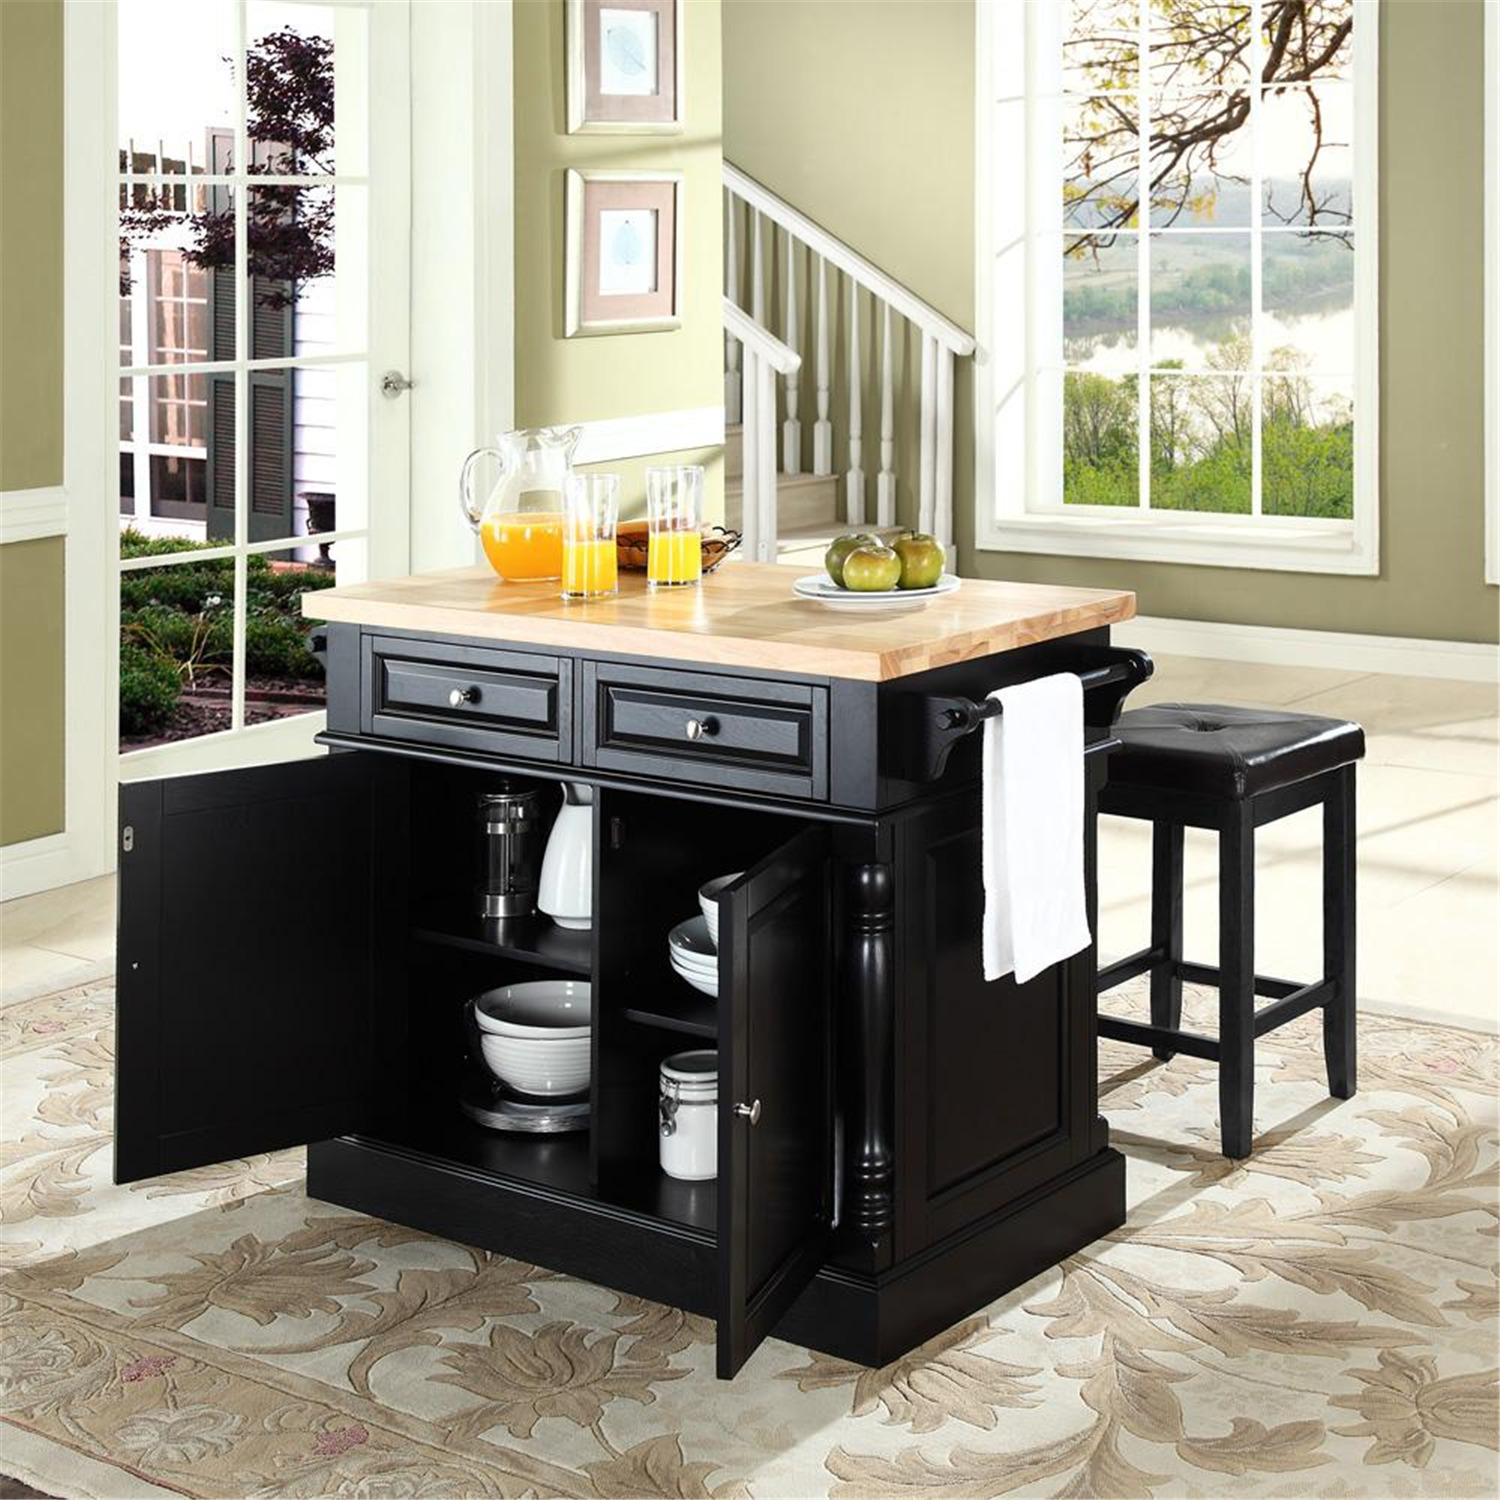 24 Kitchen Island: Crosley Butcher Block Top Kitchen Island With 24